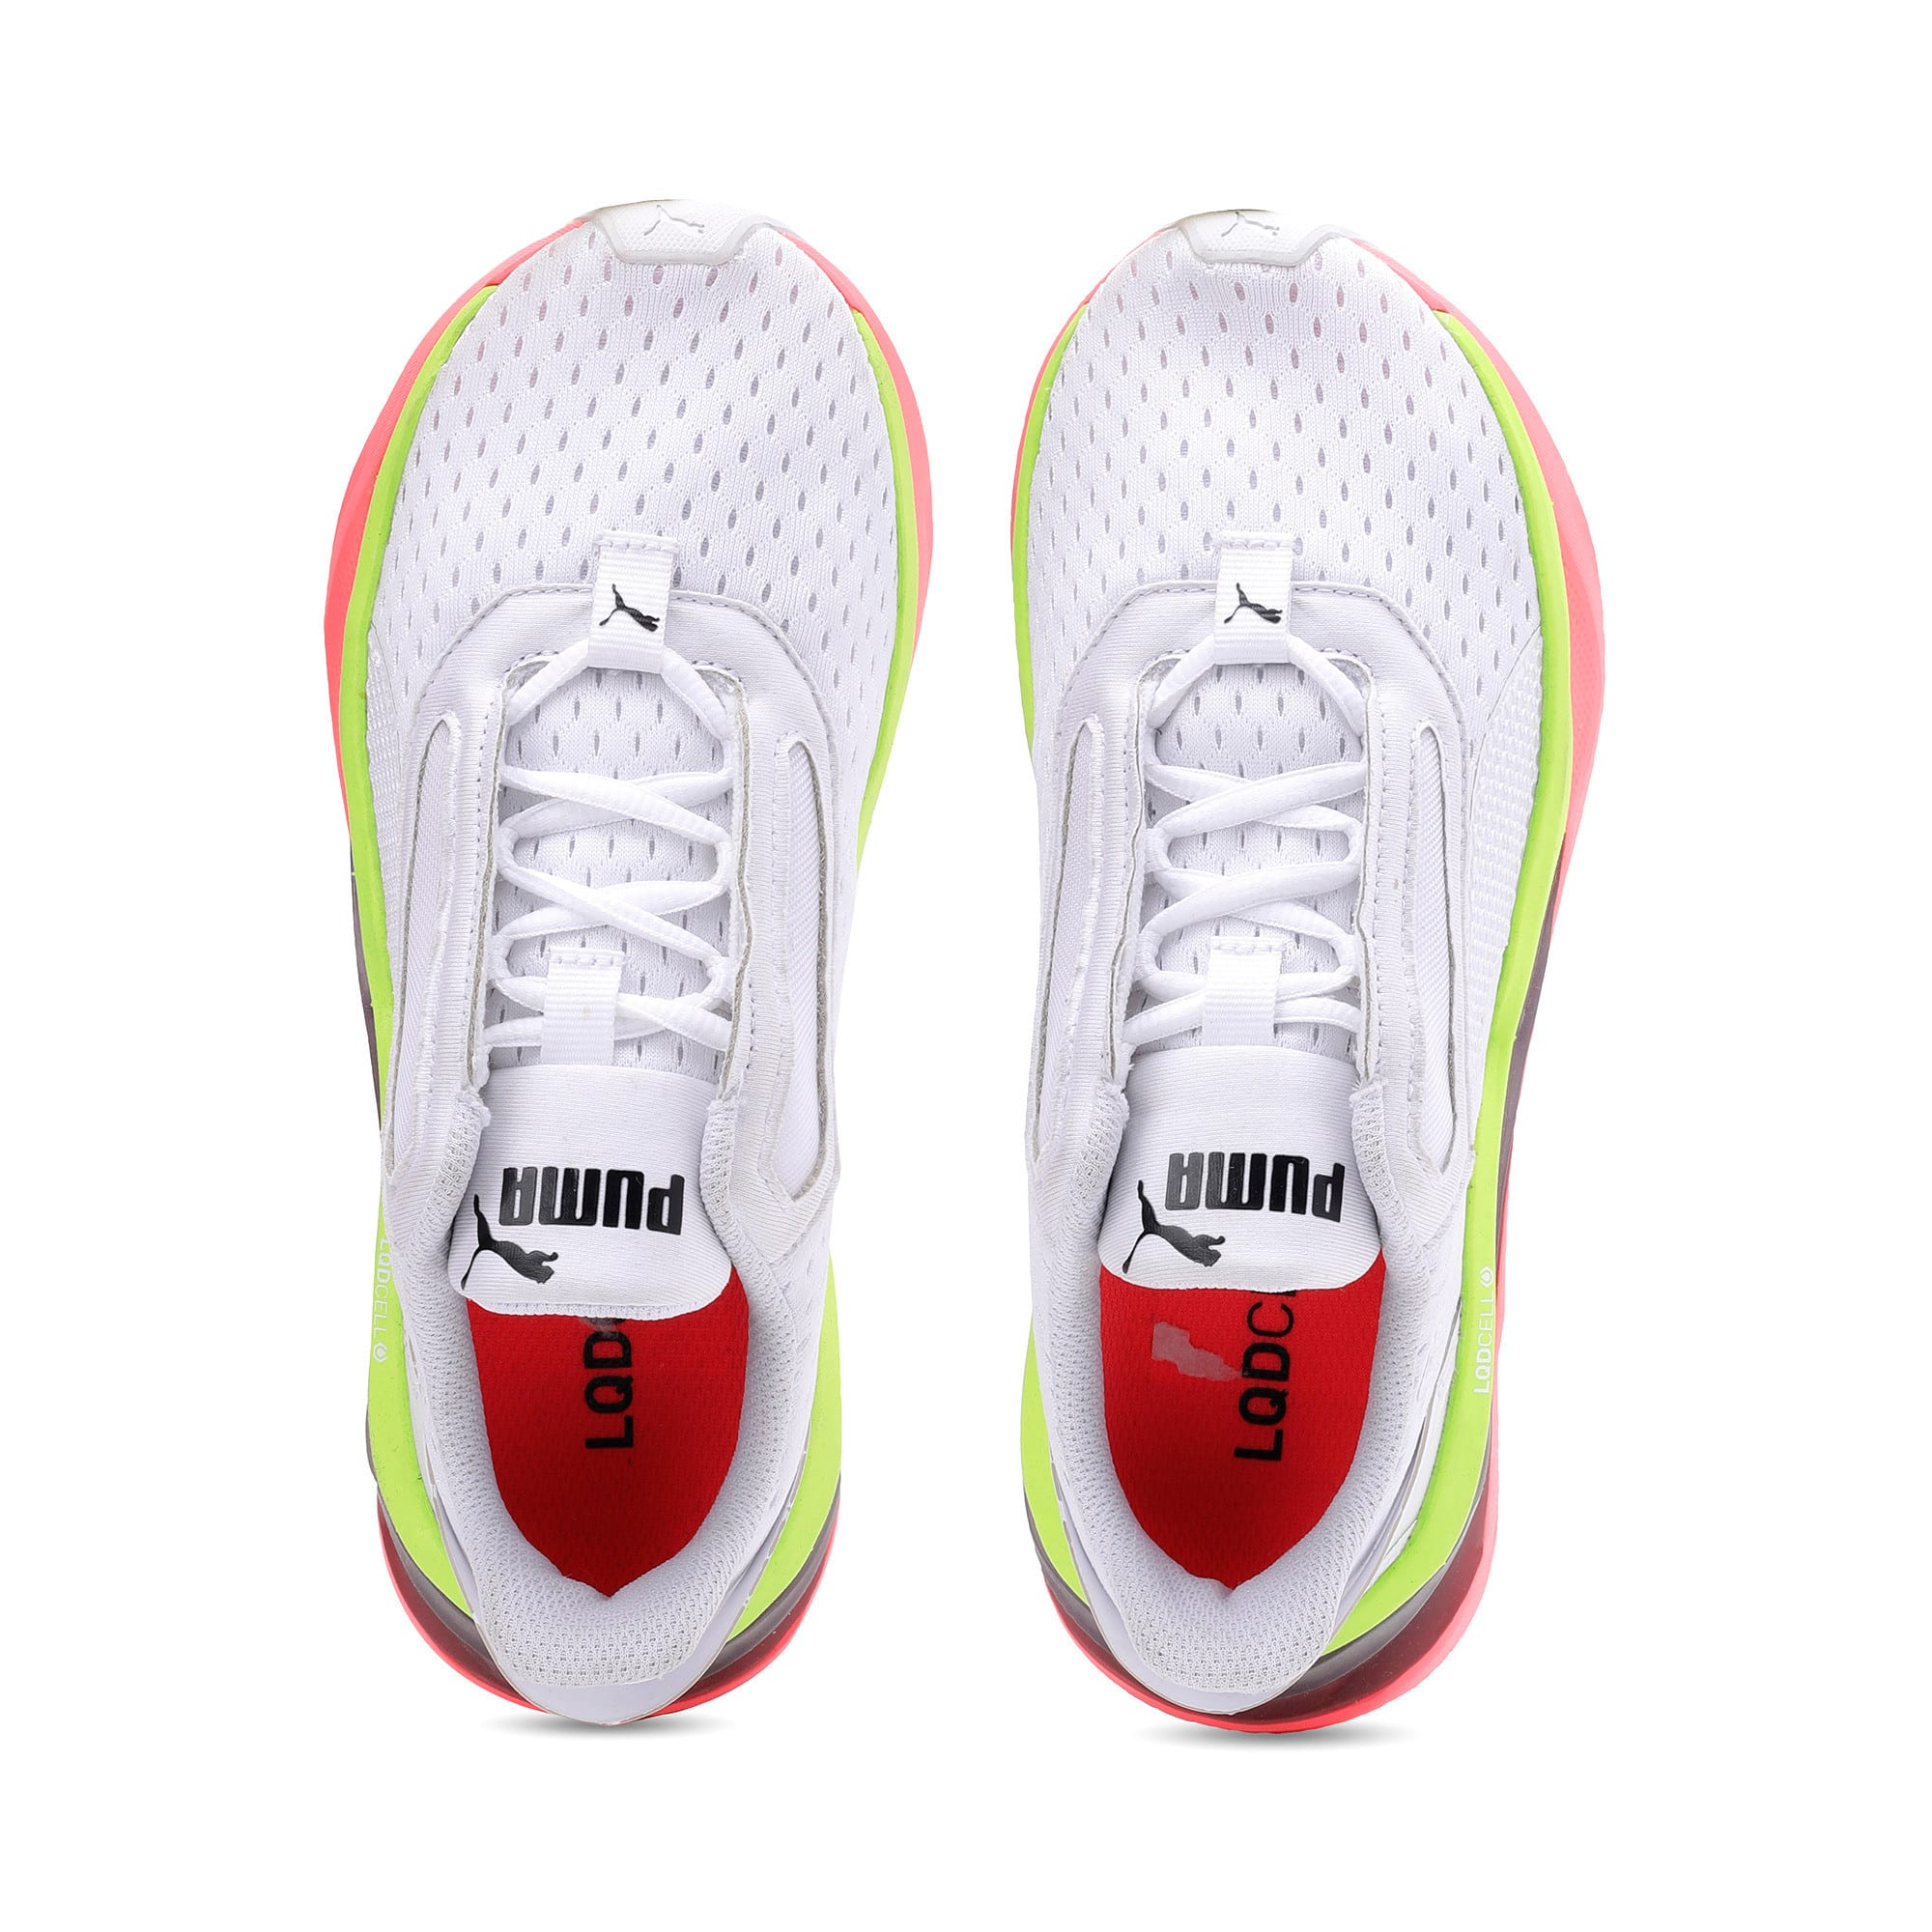 Thumbnail 9 of LQDCell Shatter XT Women's Training Shoes, Puma White-Pink Alert, medium-IND